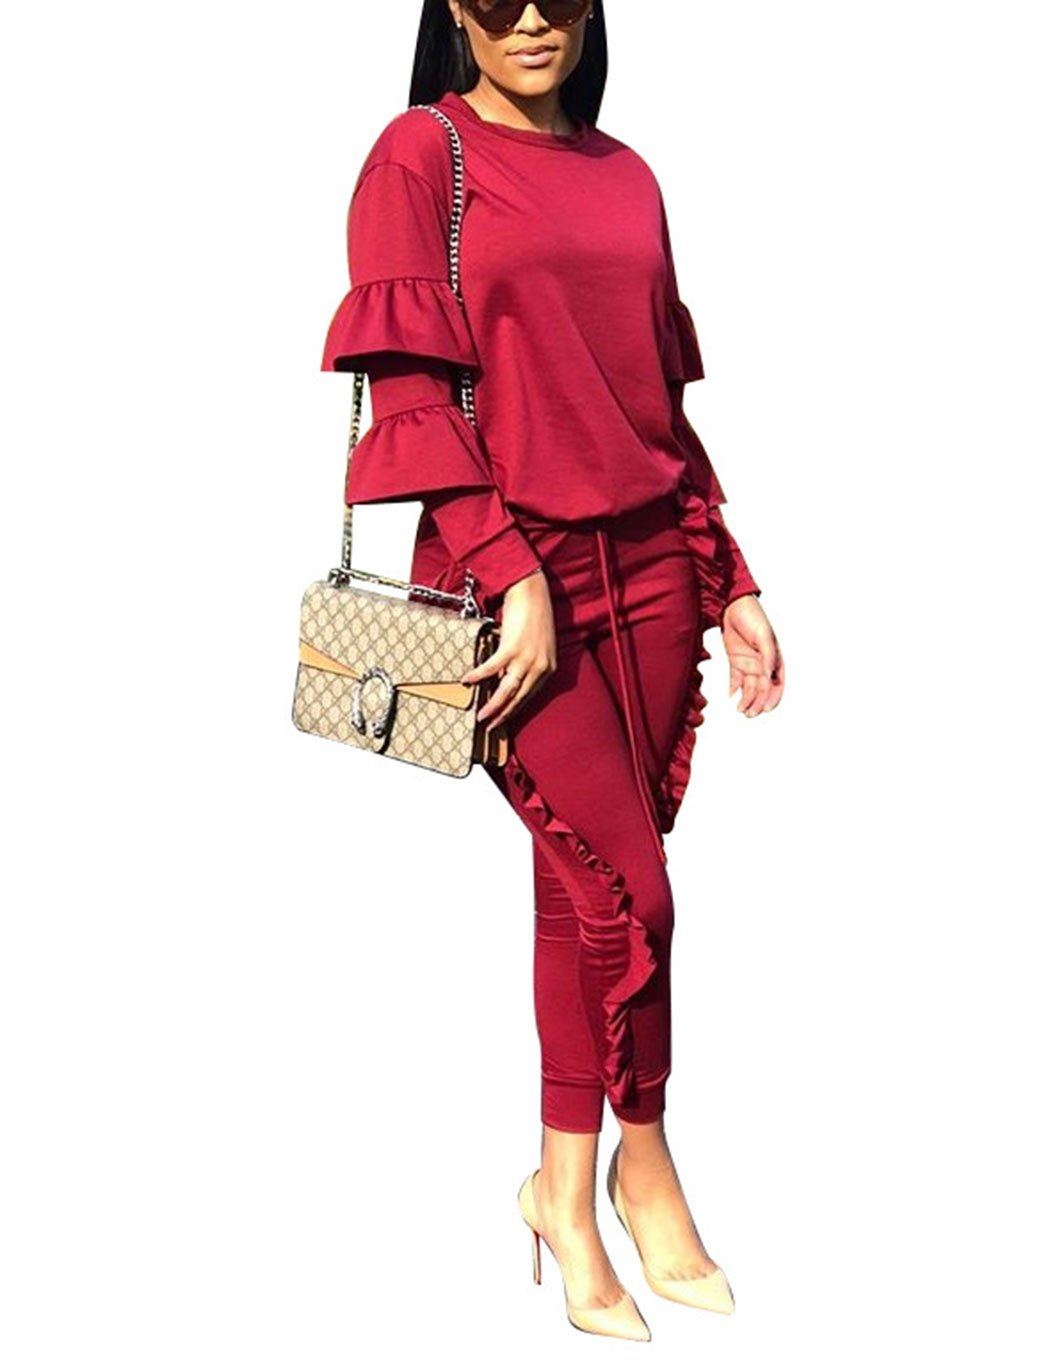 Subtle Flavor Women 2 Pieces Outfits Puff Sleeve Top and Long Ruffle Trousers Sweatsuits Set Tracksuits Wine Red Small